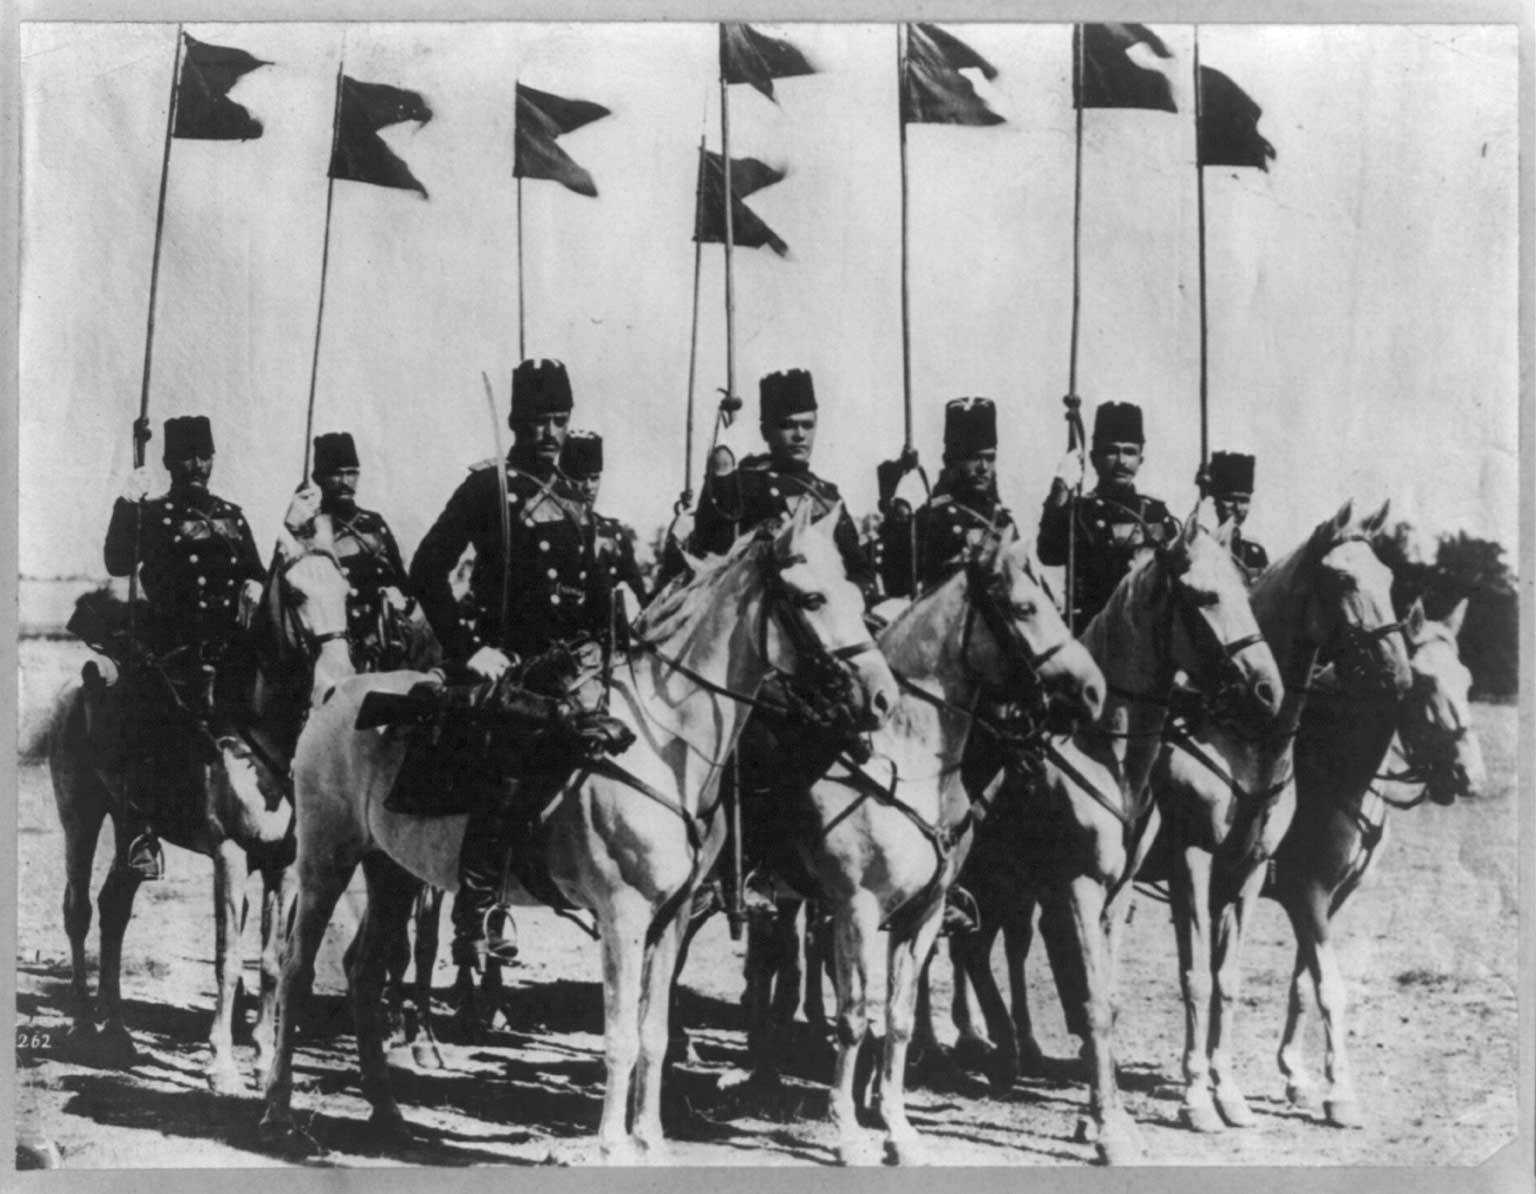 Eight members of the Turkish cavalry on horseback with flags  ca. 1913. Reports from Bulgaria claim that Turkish troops have committed a series of atrocities in the country